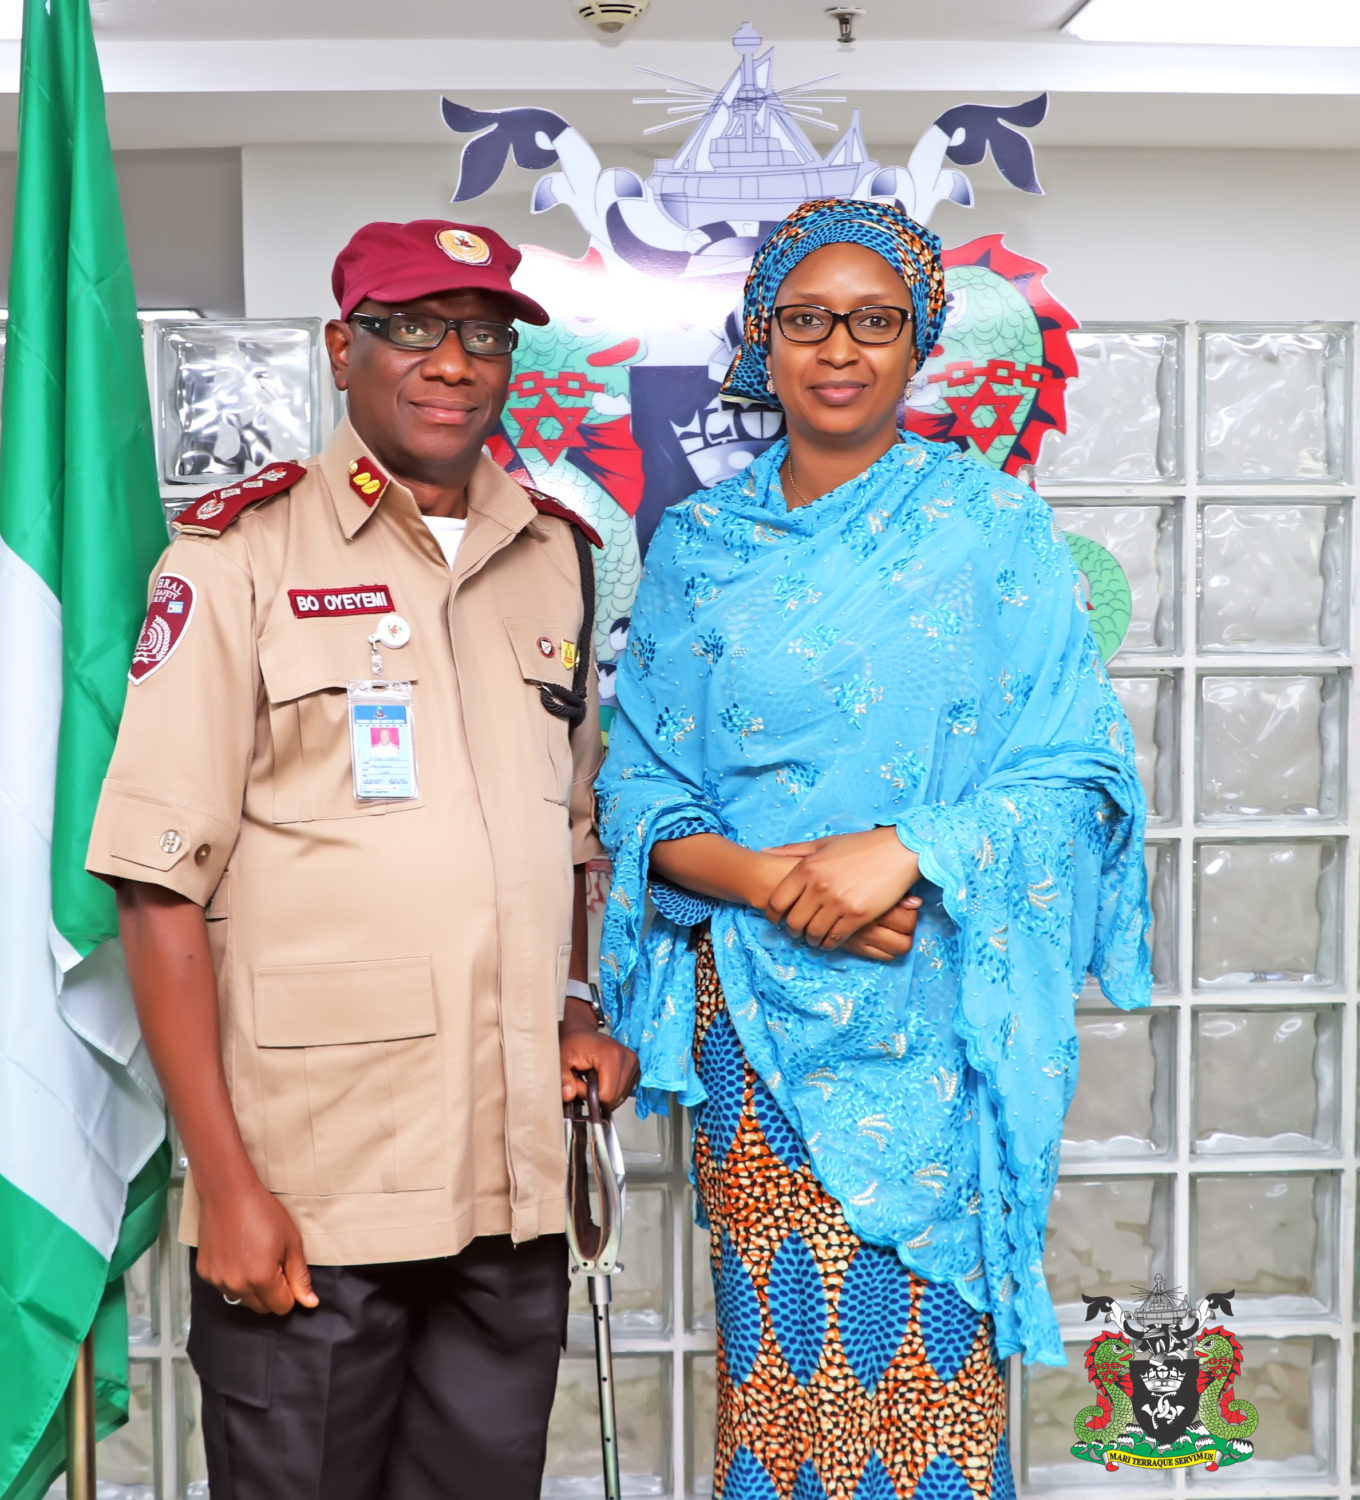 Caption1. The Managing Director, Nigerian Ports Authority (NPA),Hadiza Bala Usman (right) and the Corps Marshal, Federal Road Safety Corps (FRSC), Dr. Boboye Oyeyemi, who paid a courtesy call on the MD at the NPA Corporate Headquarters in Lagos, yesterday.